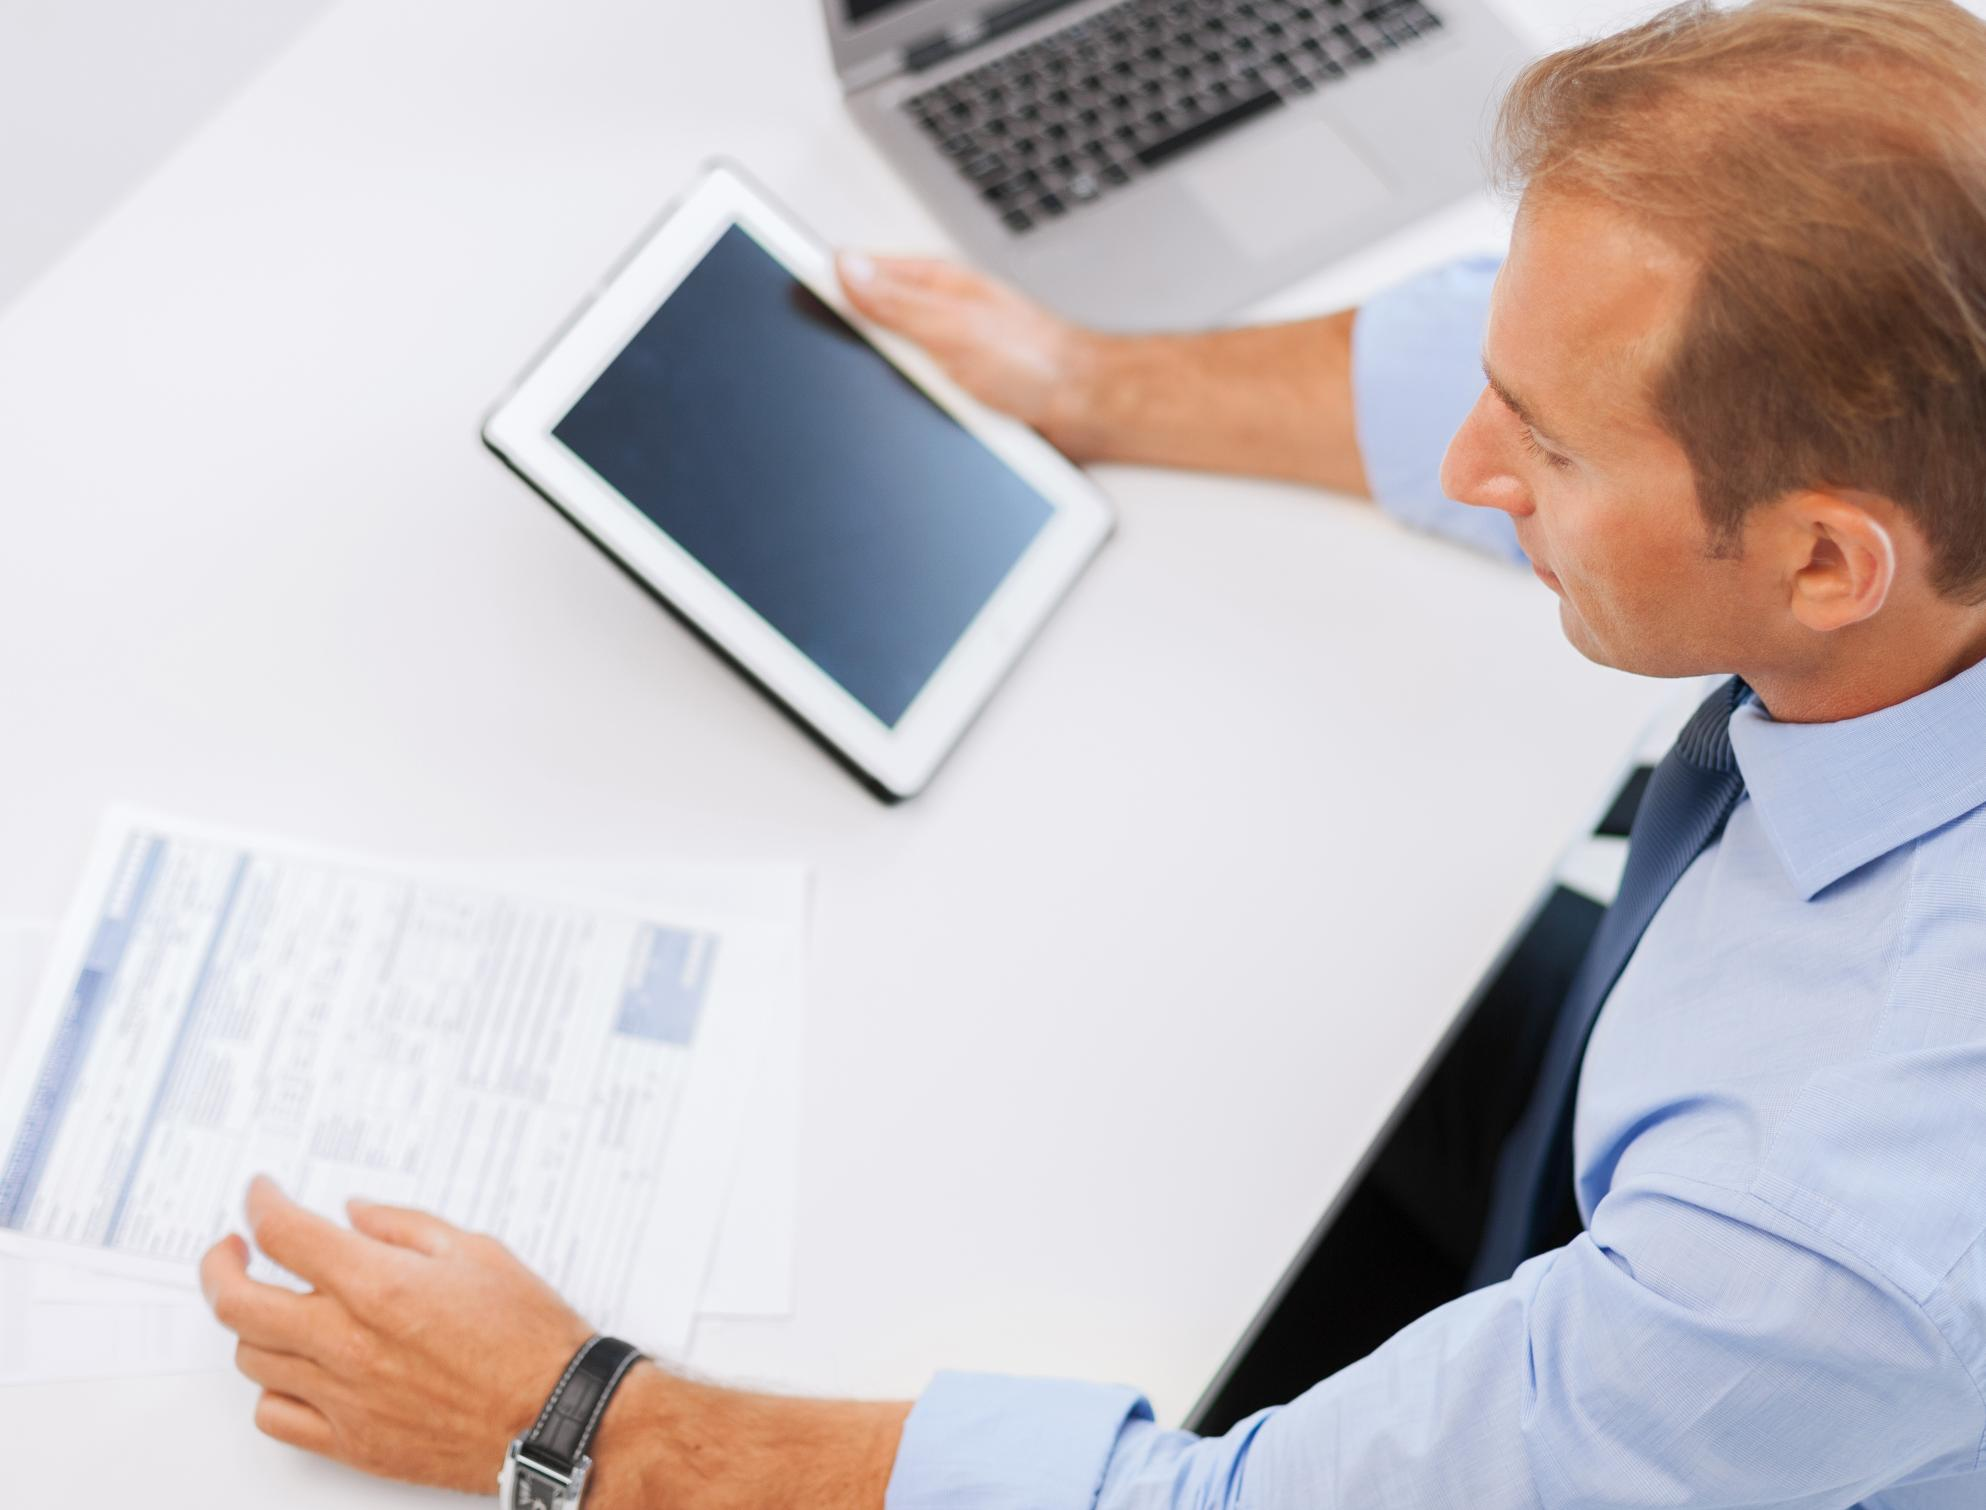 Arlington bookkeeping engaging in small business bookkeeping service